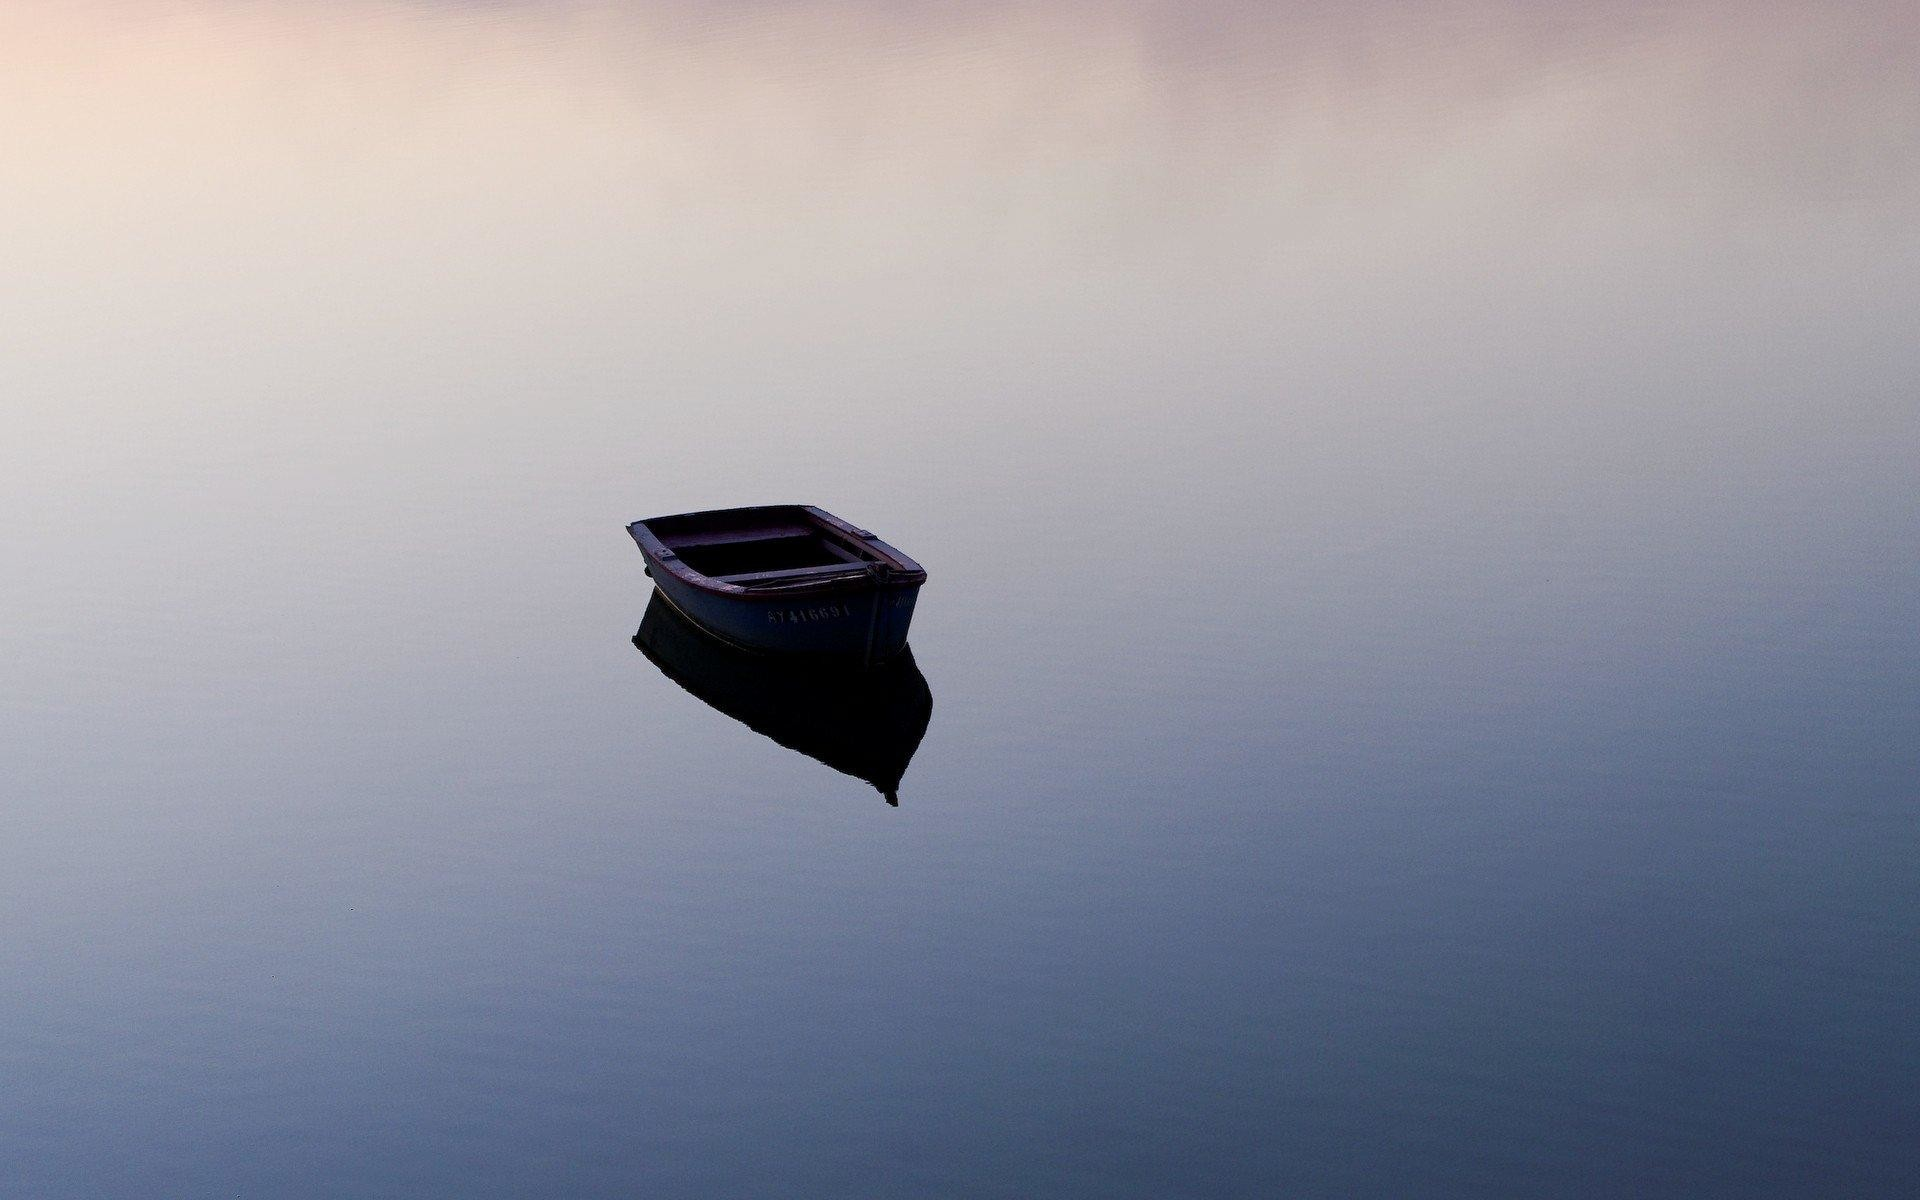 wallpaper.wiki-Download-Free-Calm-Background-PIC-WPB001898